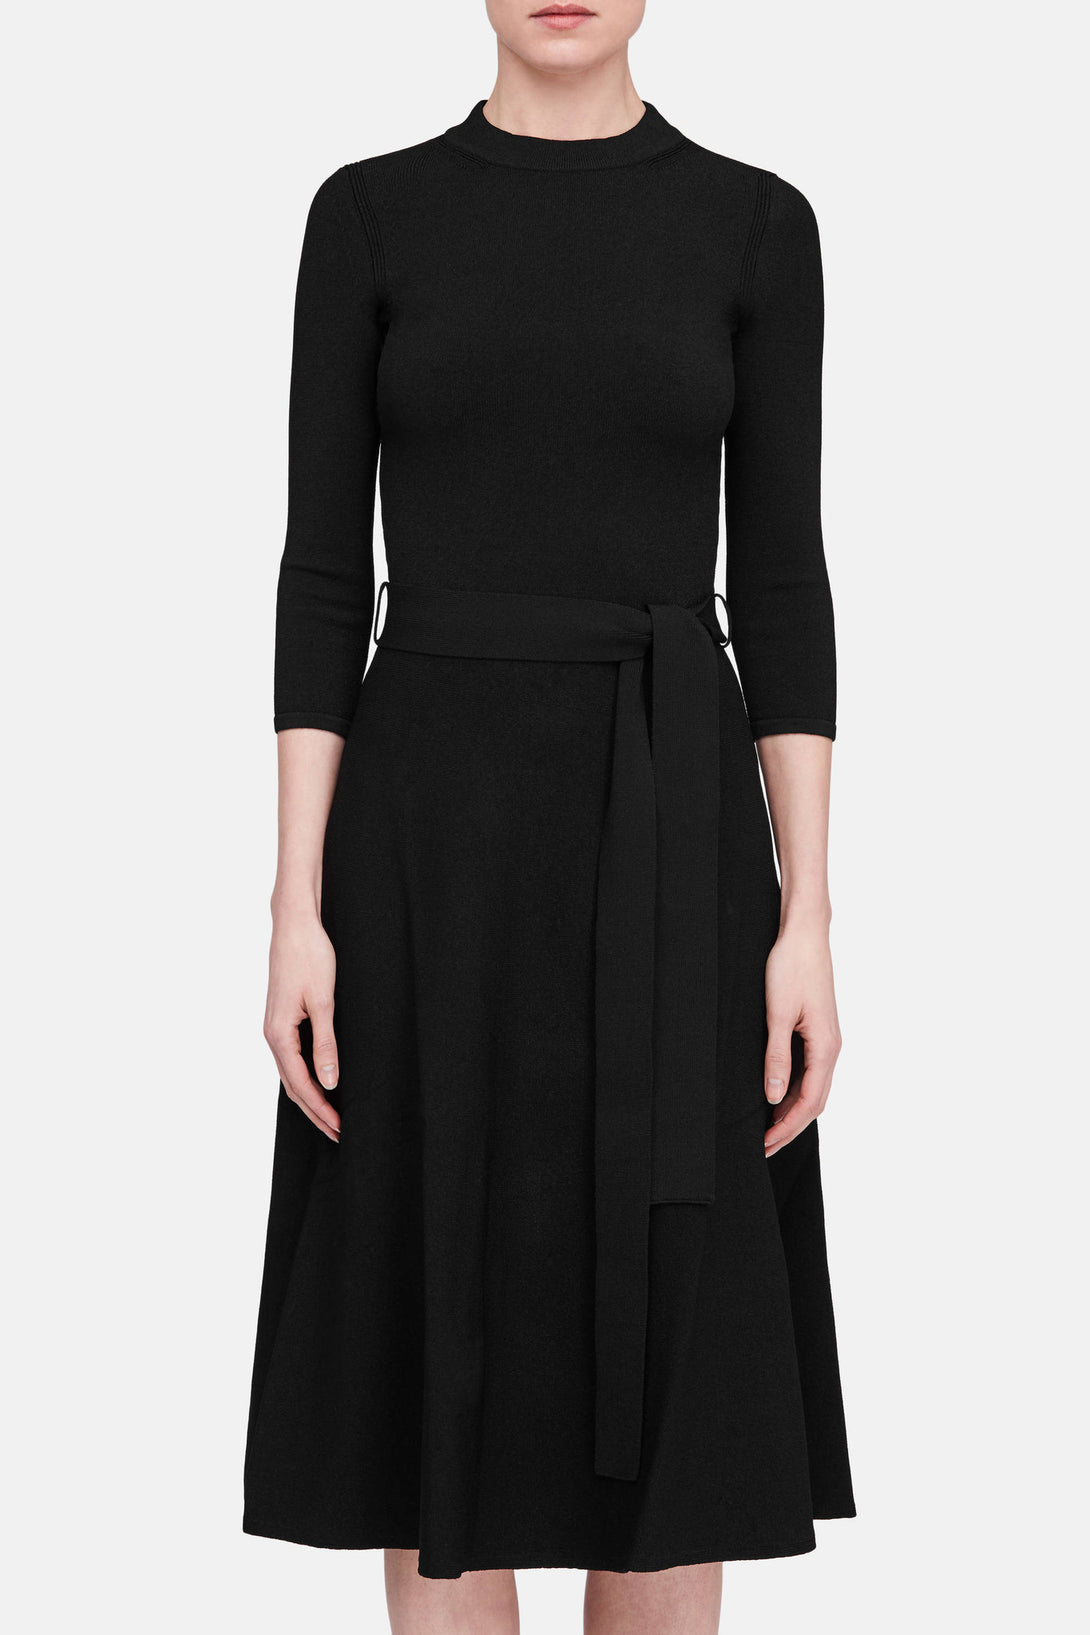 Konnie Dress - Black